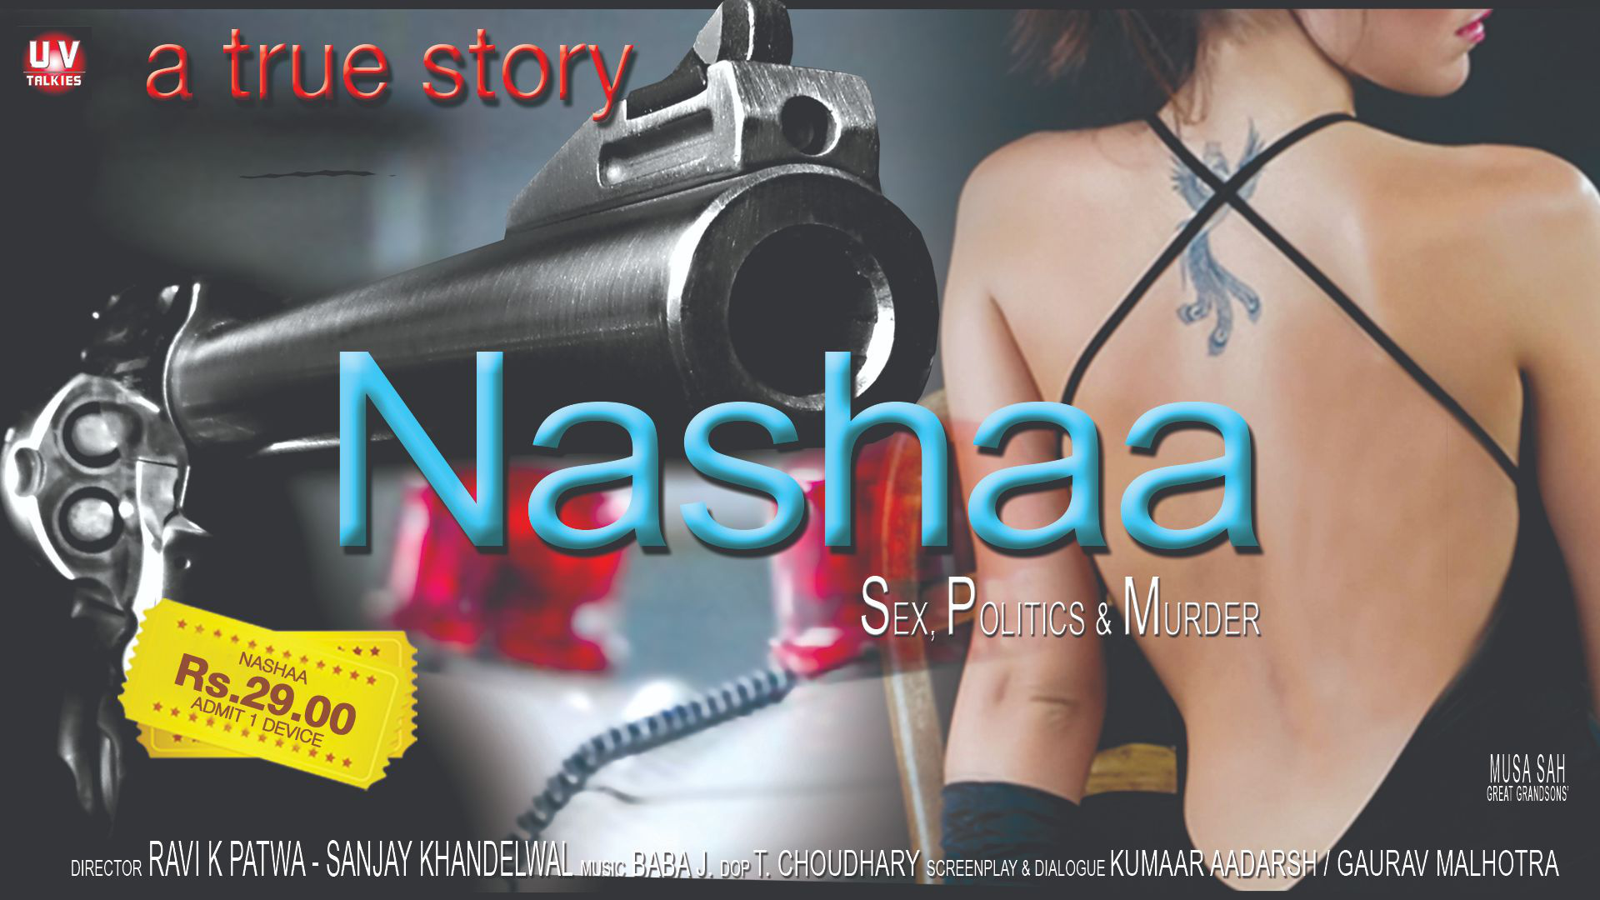 $1.29 - Nashaa - International